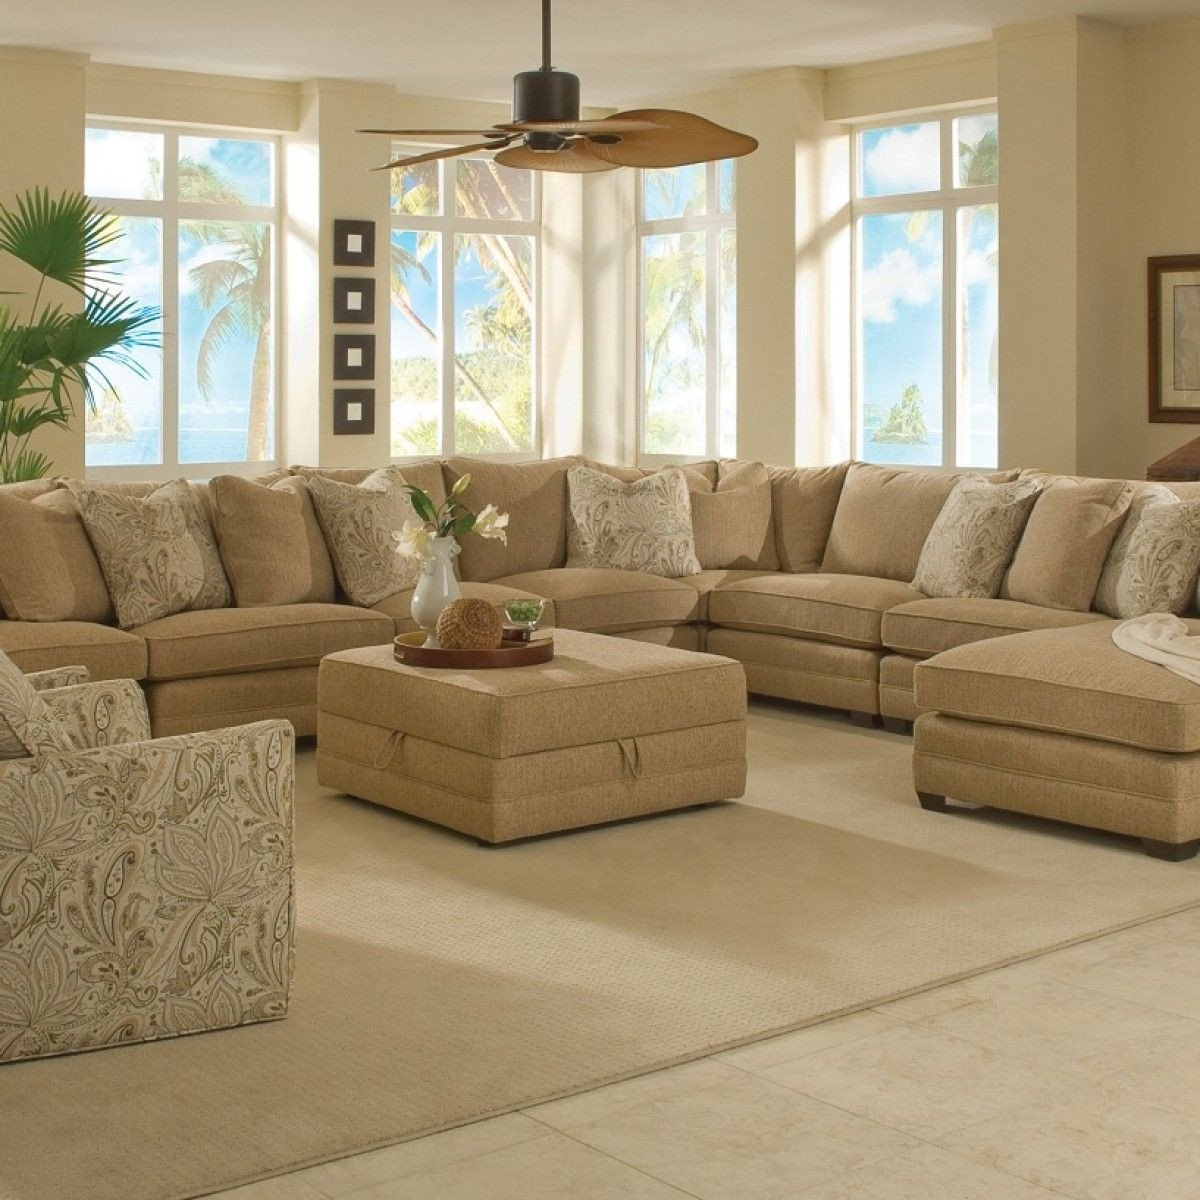 Living Room Decor with Sectional Luxury Magnificent Sectional sofas